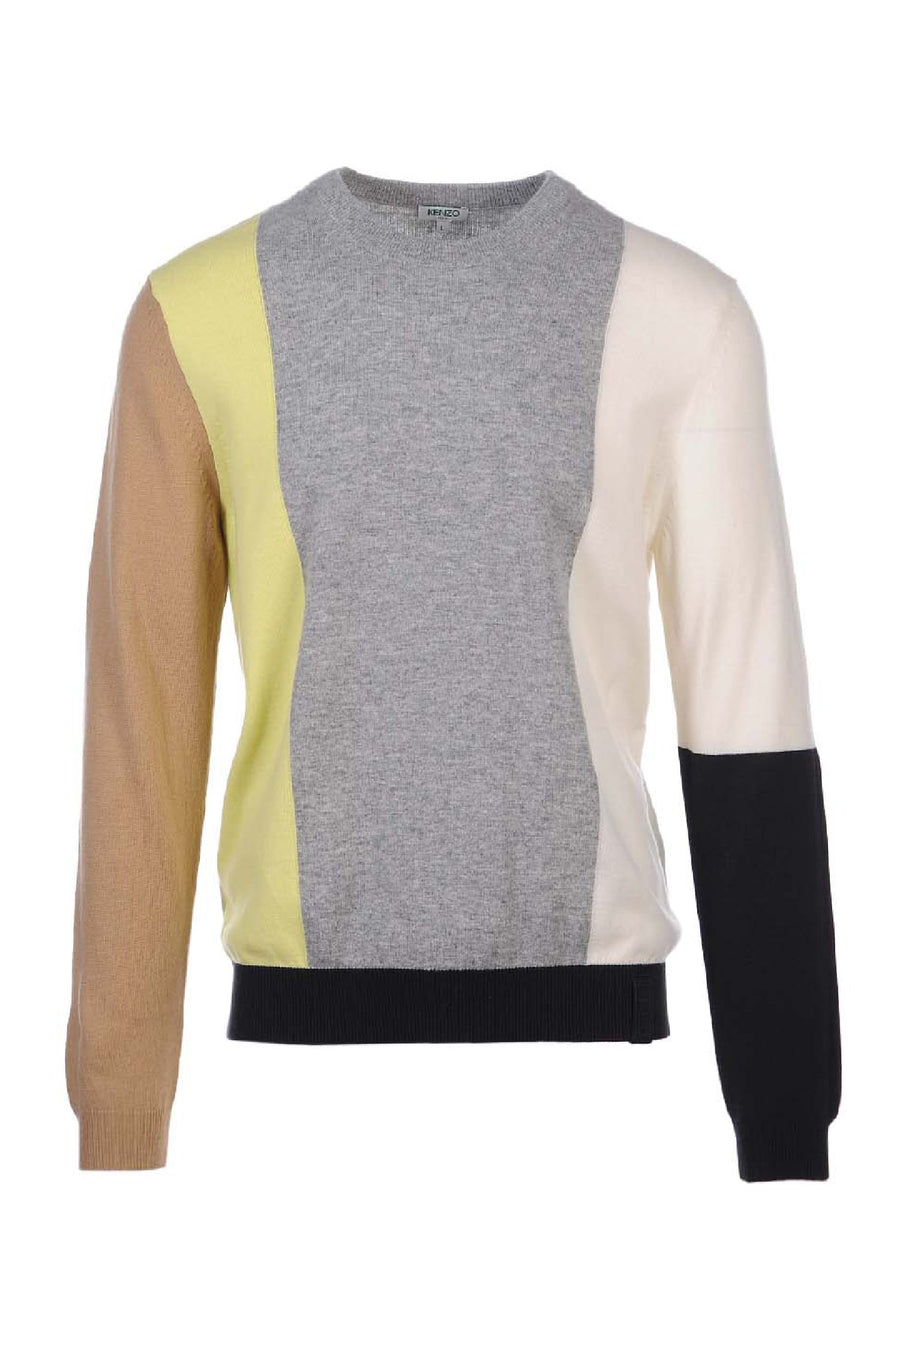 Colourblock Sweater Paris Kenzo Designer Basic Casual Fashion Menswear